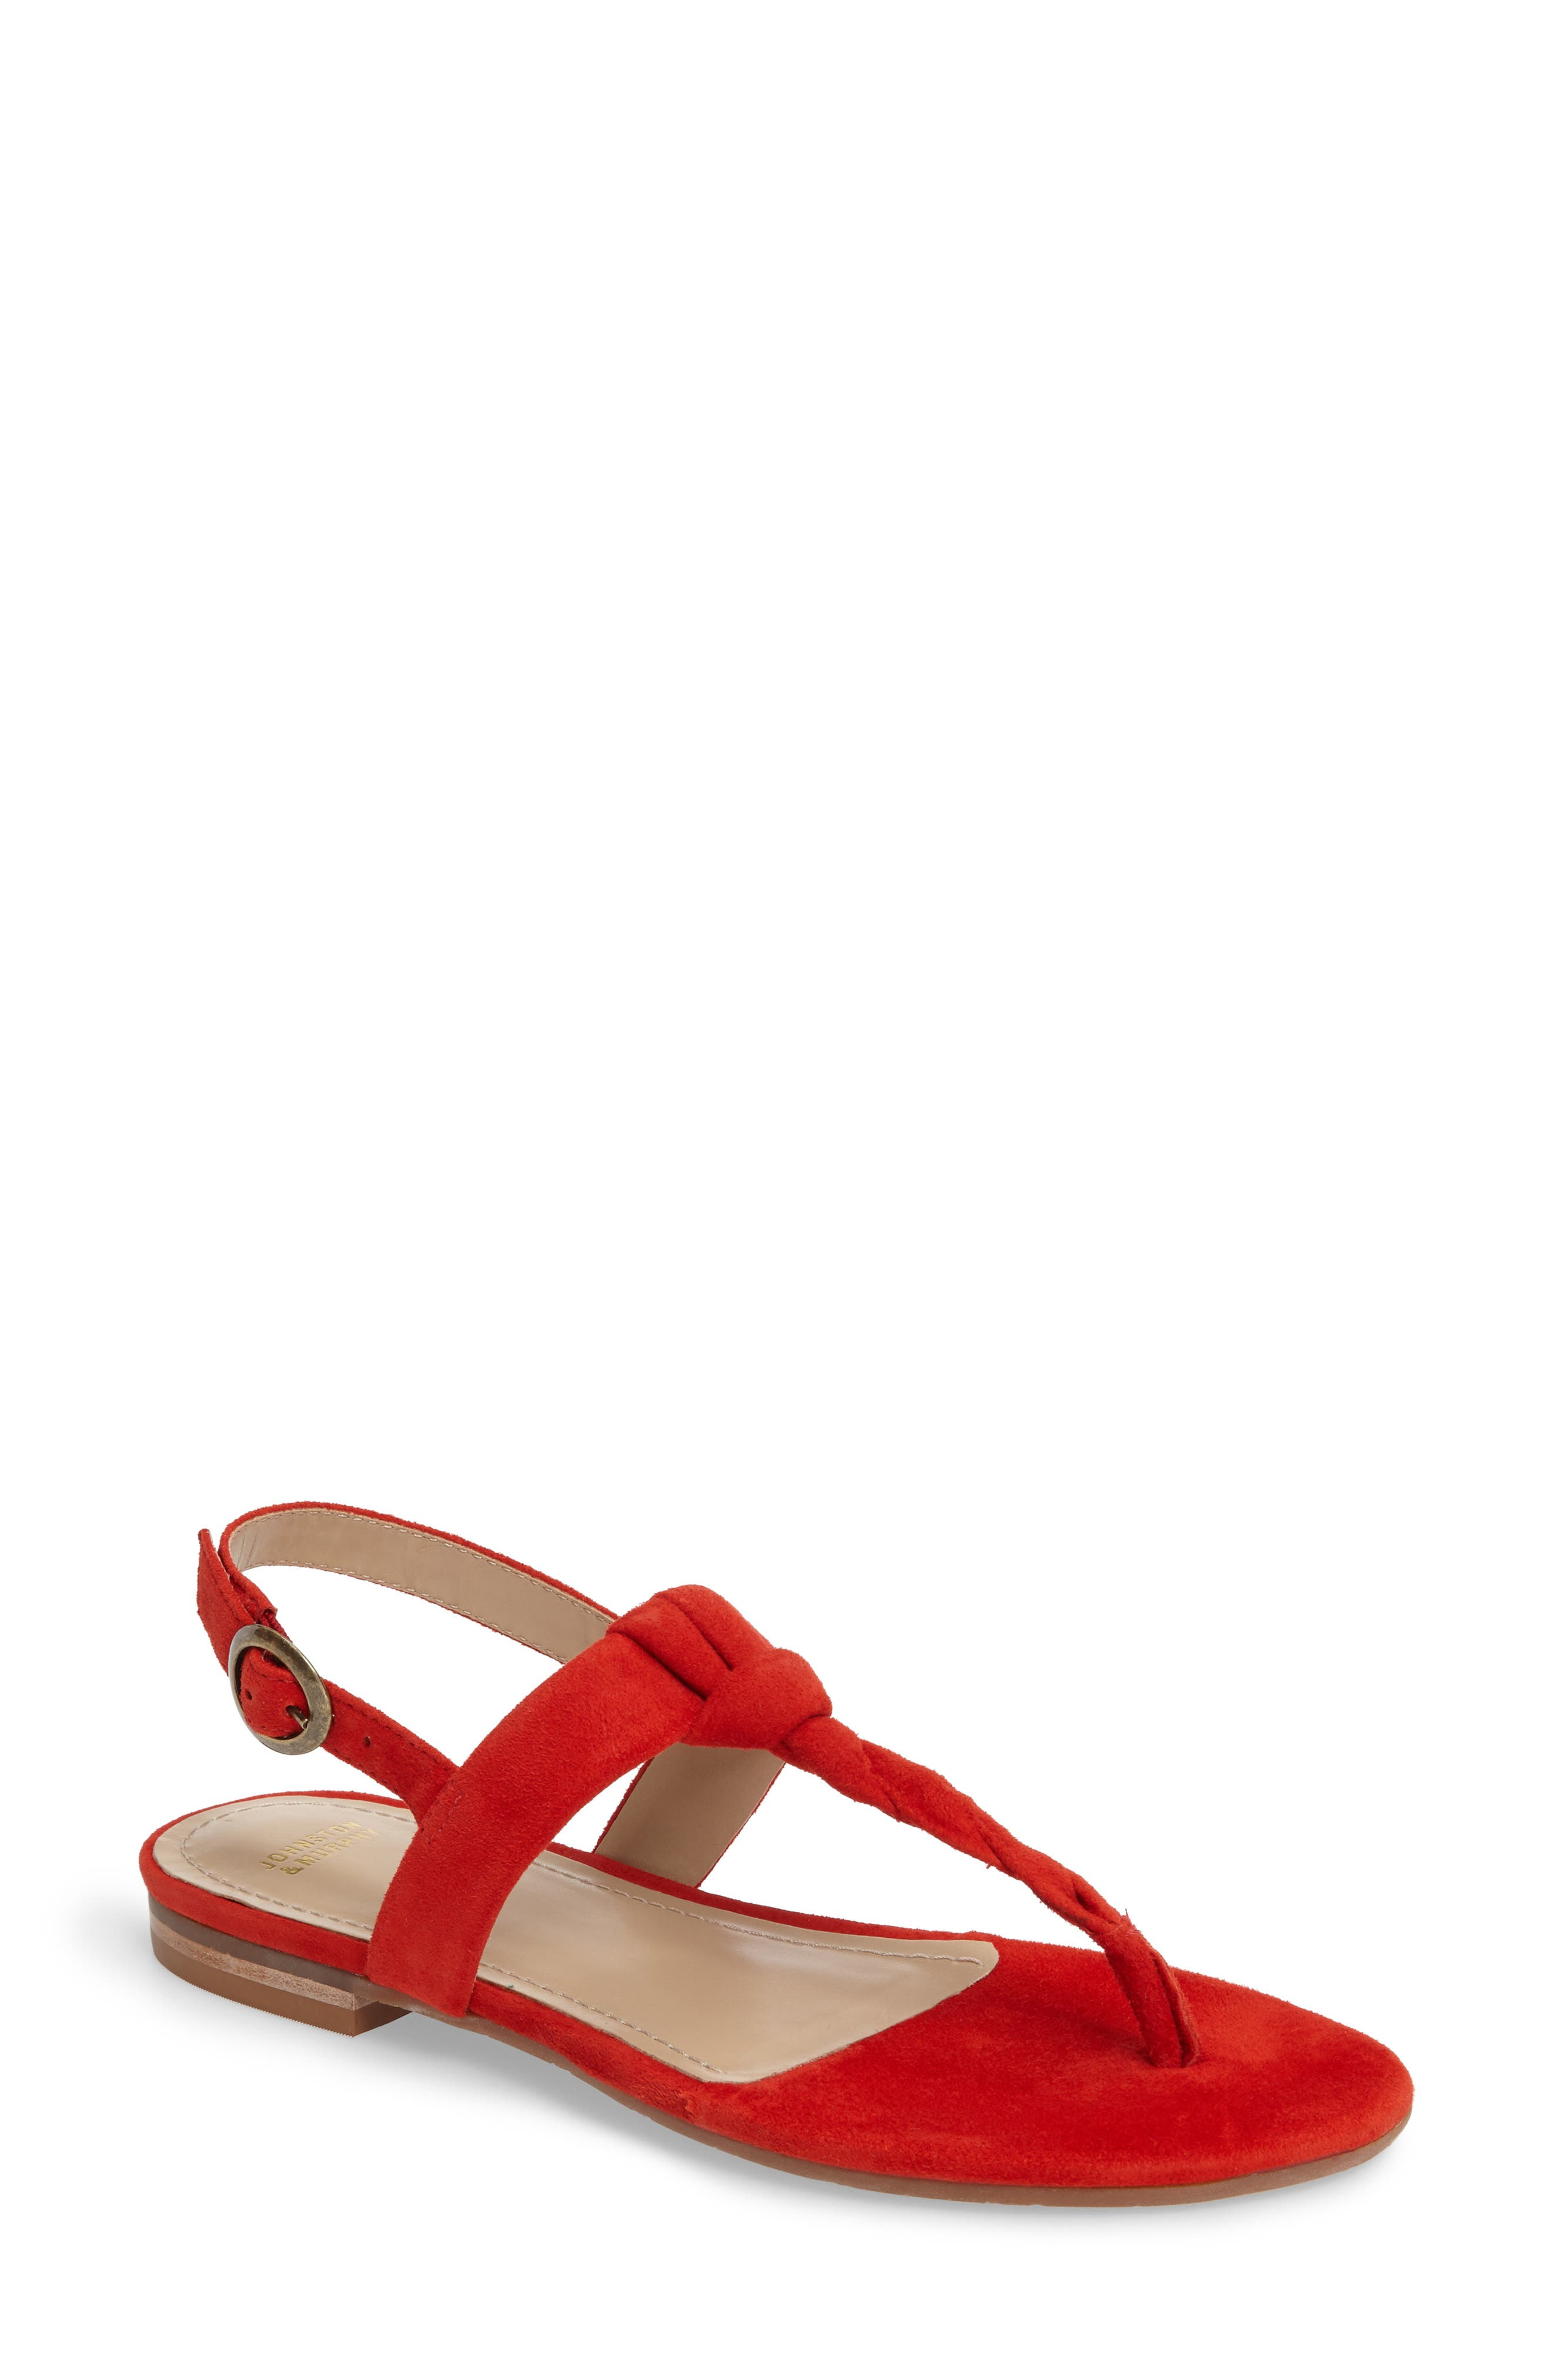 Holly Twisted T-Strap Sandal,                             Main thumbnail 4, color,